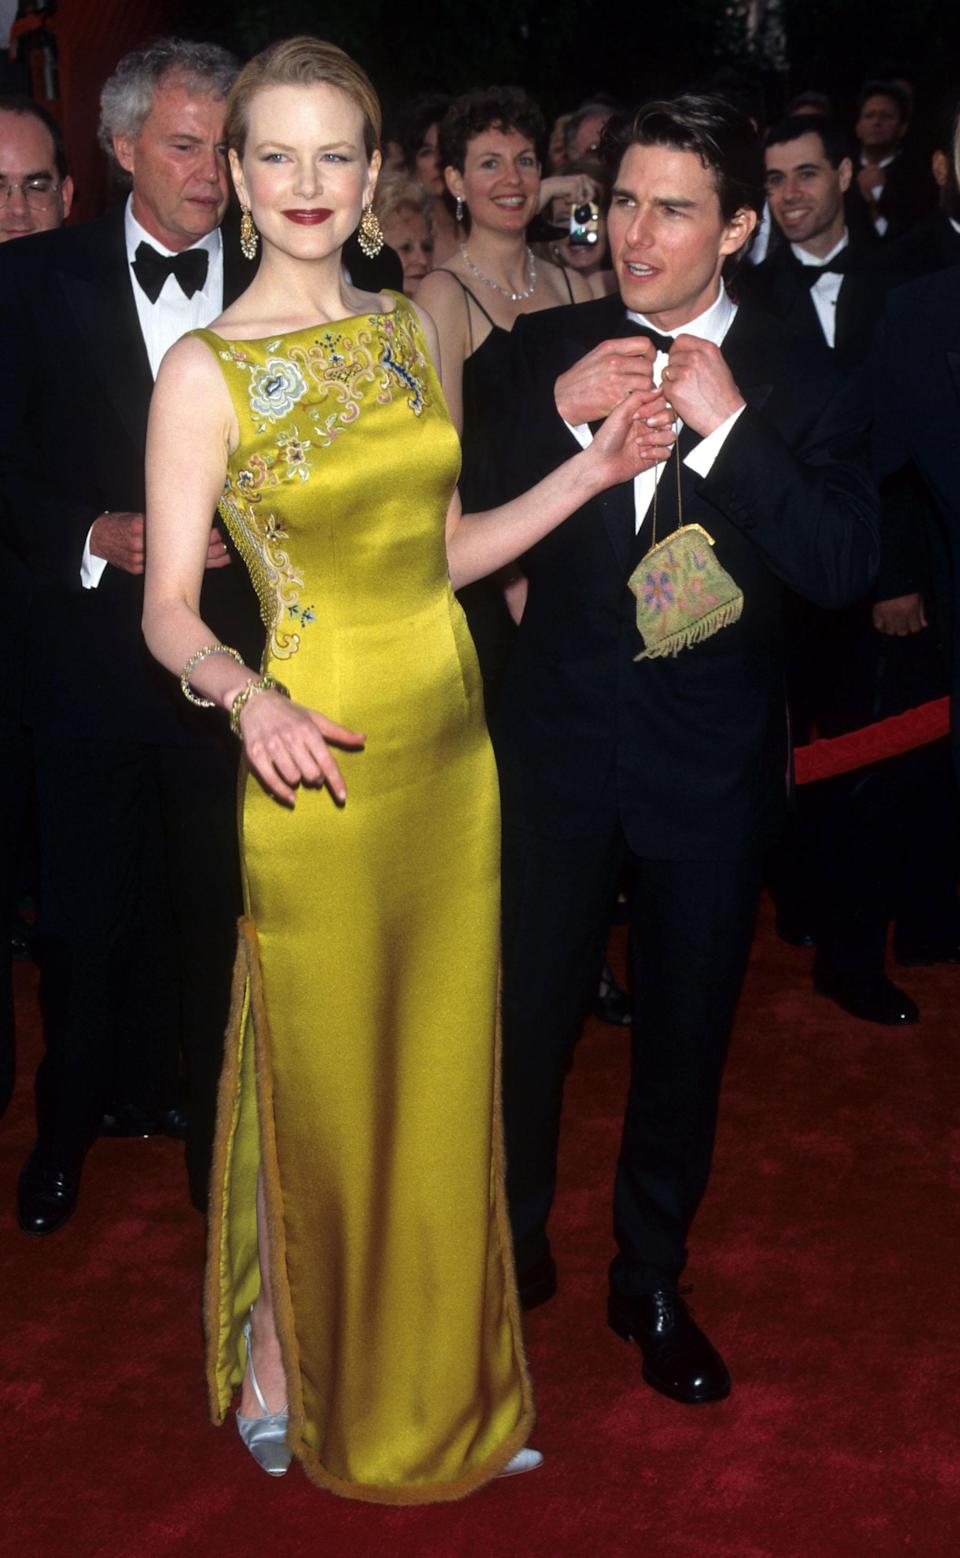 Kidman's mandarin-inspired Galliano for Dior couture dress, worn to the 1997 Oscars, is a favourite with many fashion editors and experts. Perfectly cut to fit the Australian actress' slim frame and boasting beautiful embroidery across the chest and down the side, it has to be one of Kidman's best gowns to date.